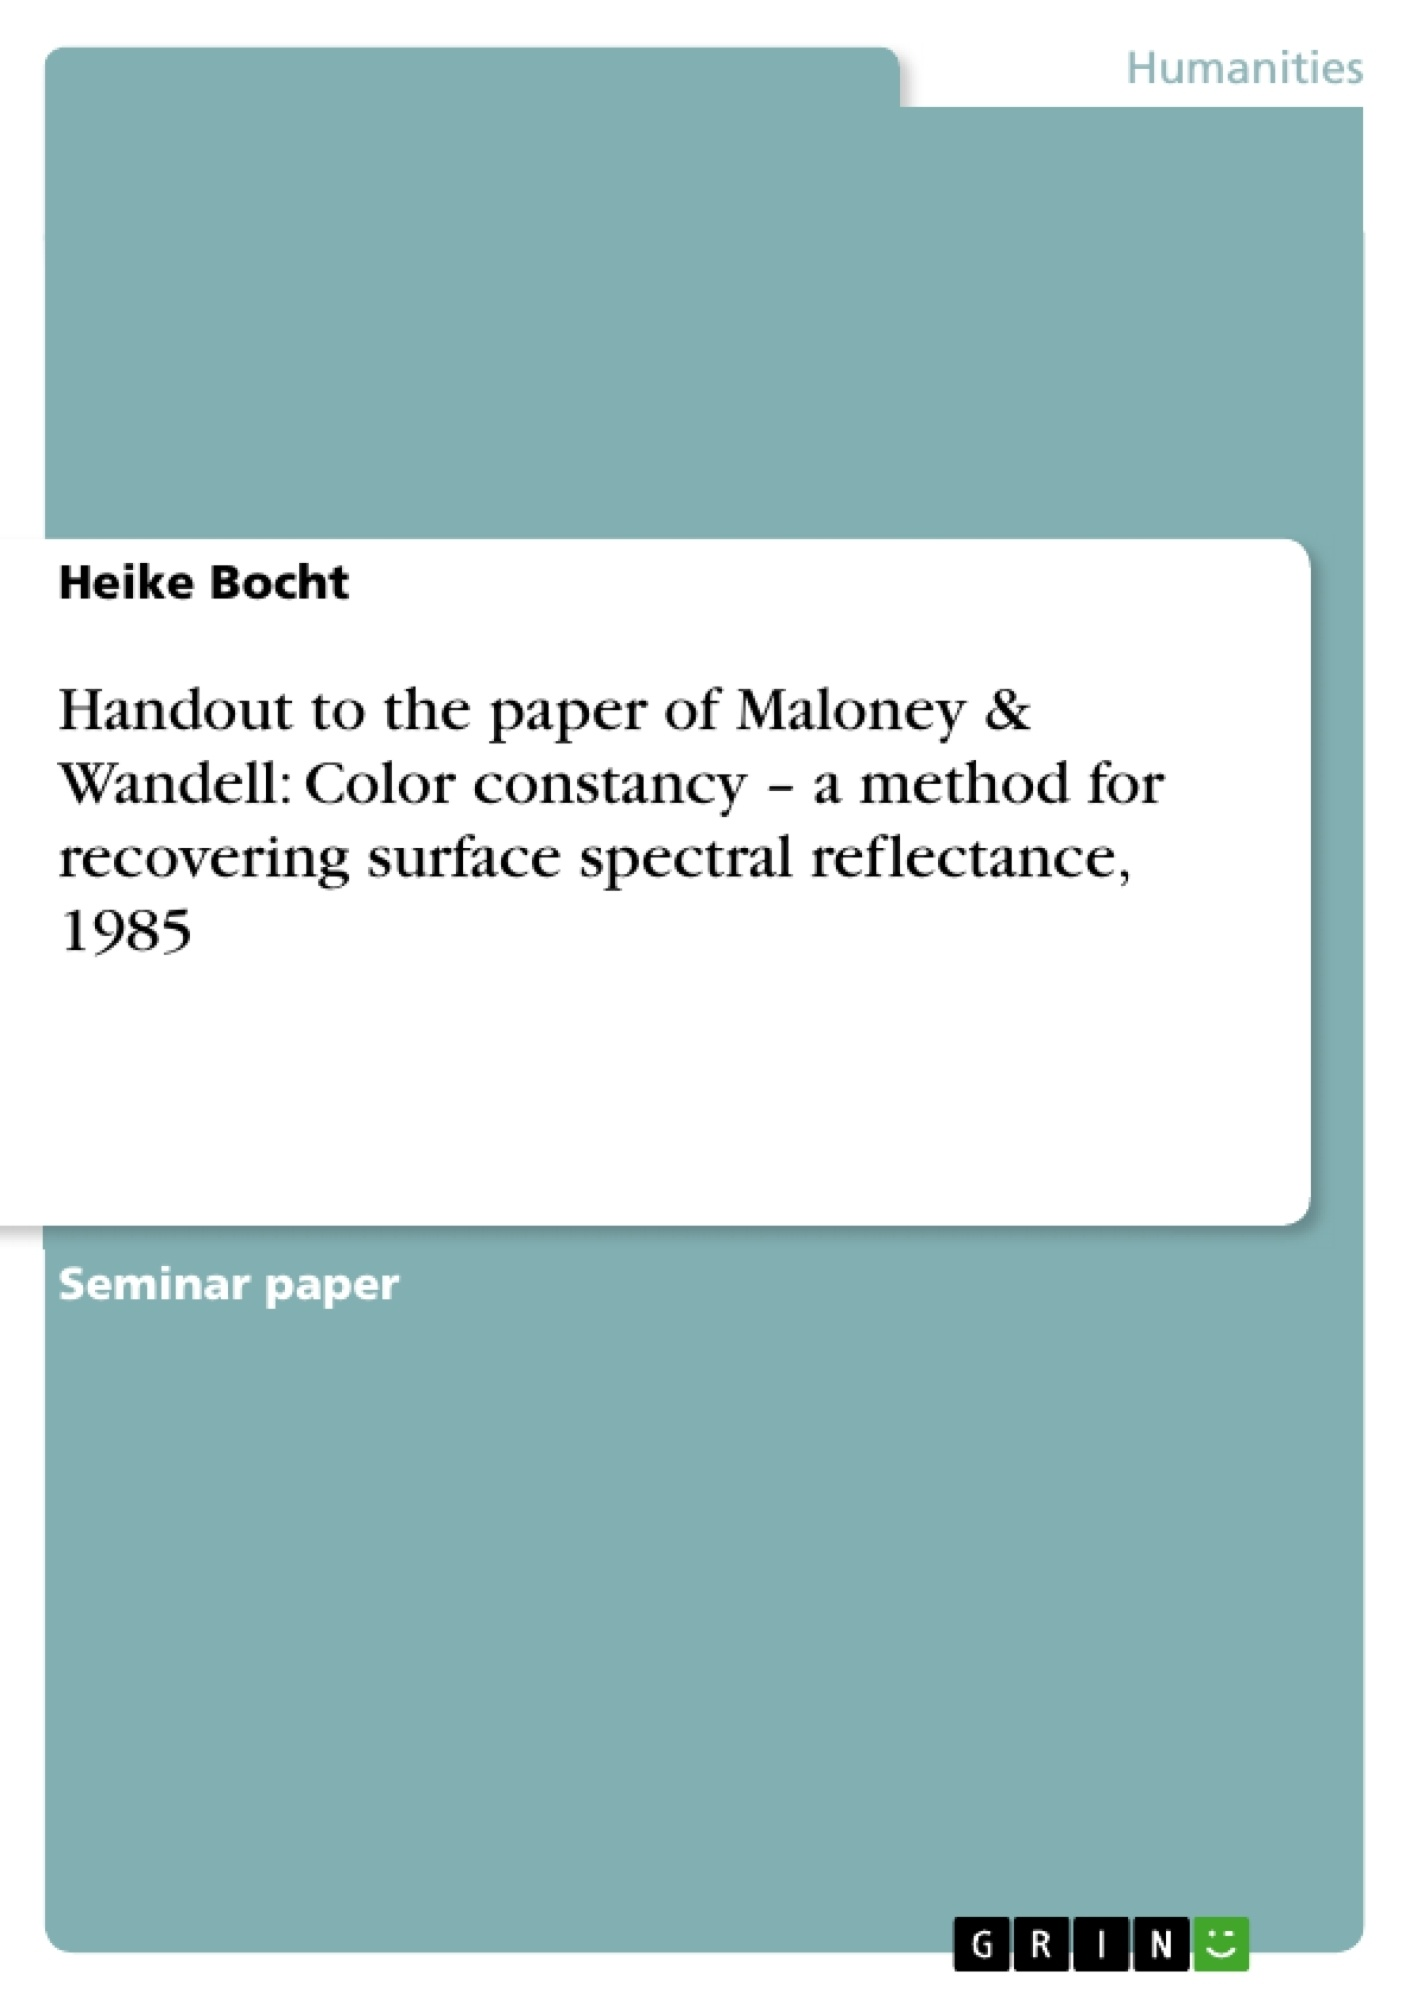 Title: Handout to the paper of Maloney & Wandell: Color constancy – a method for recovering surface spectral reflectance, 1985